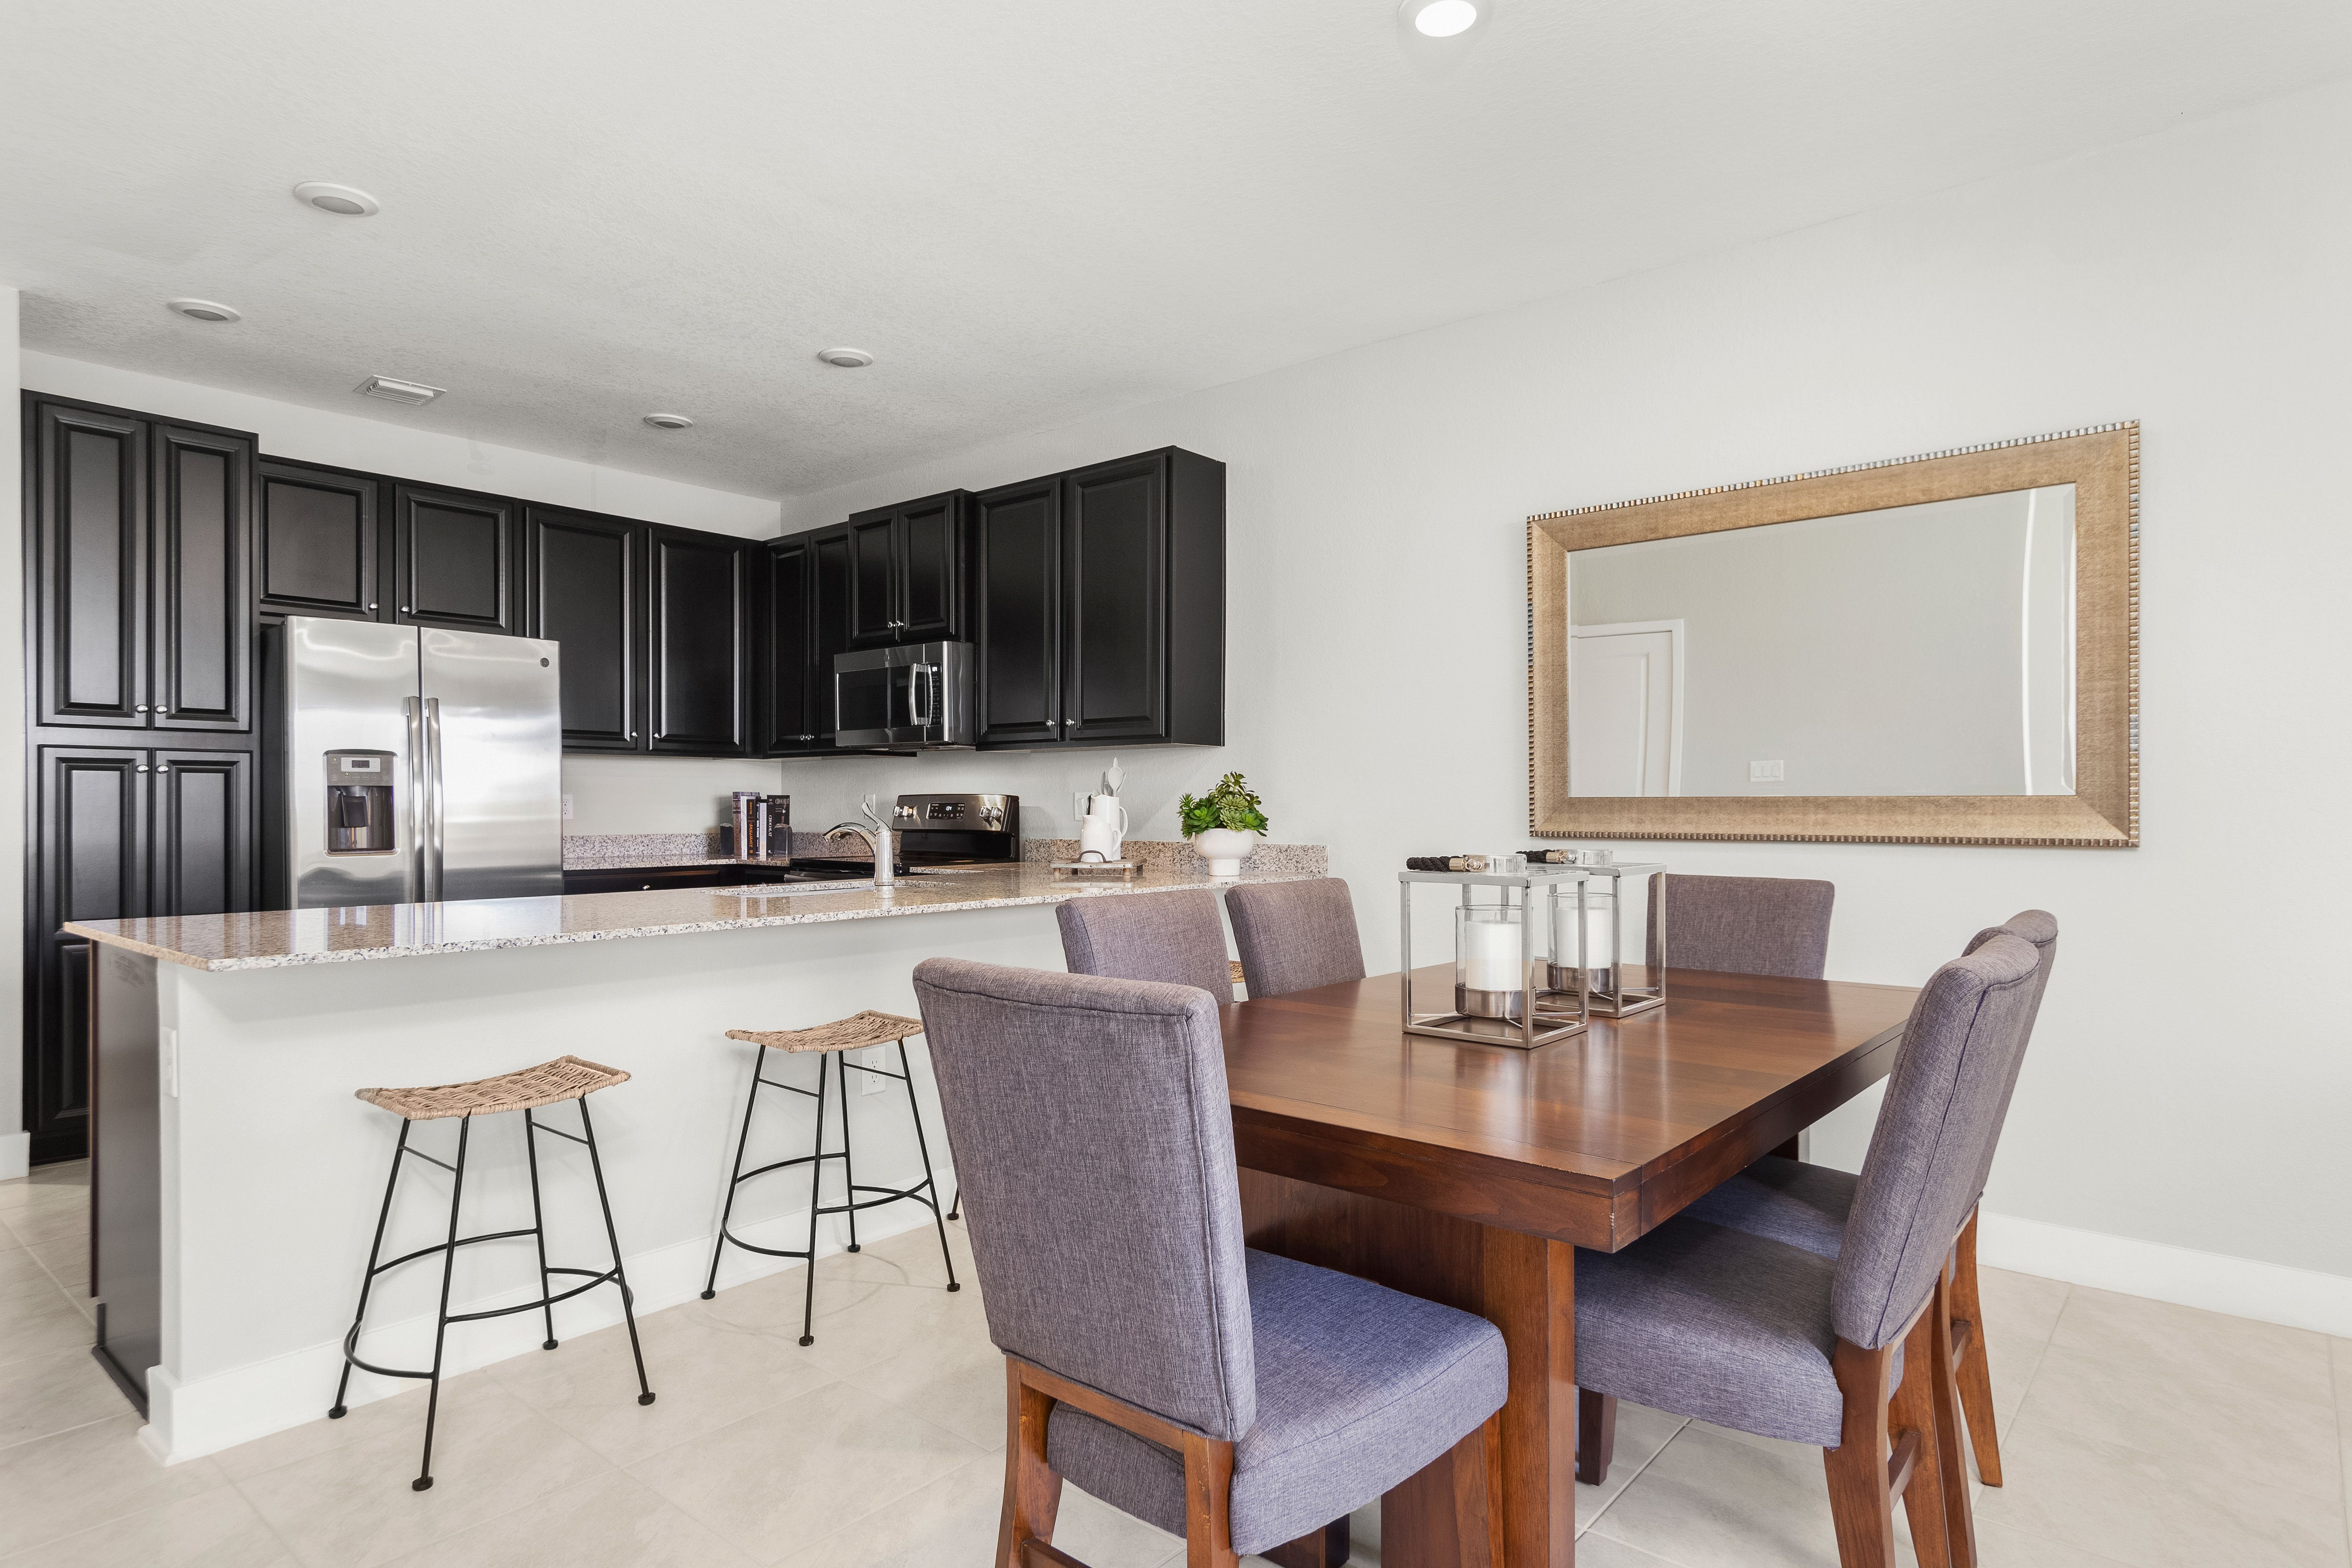 Kitchen featured in the Islandia By Ryan Homes in Miami-Dade County, FL